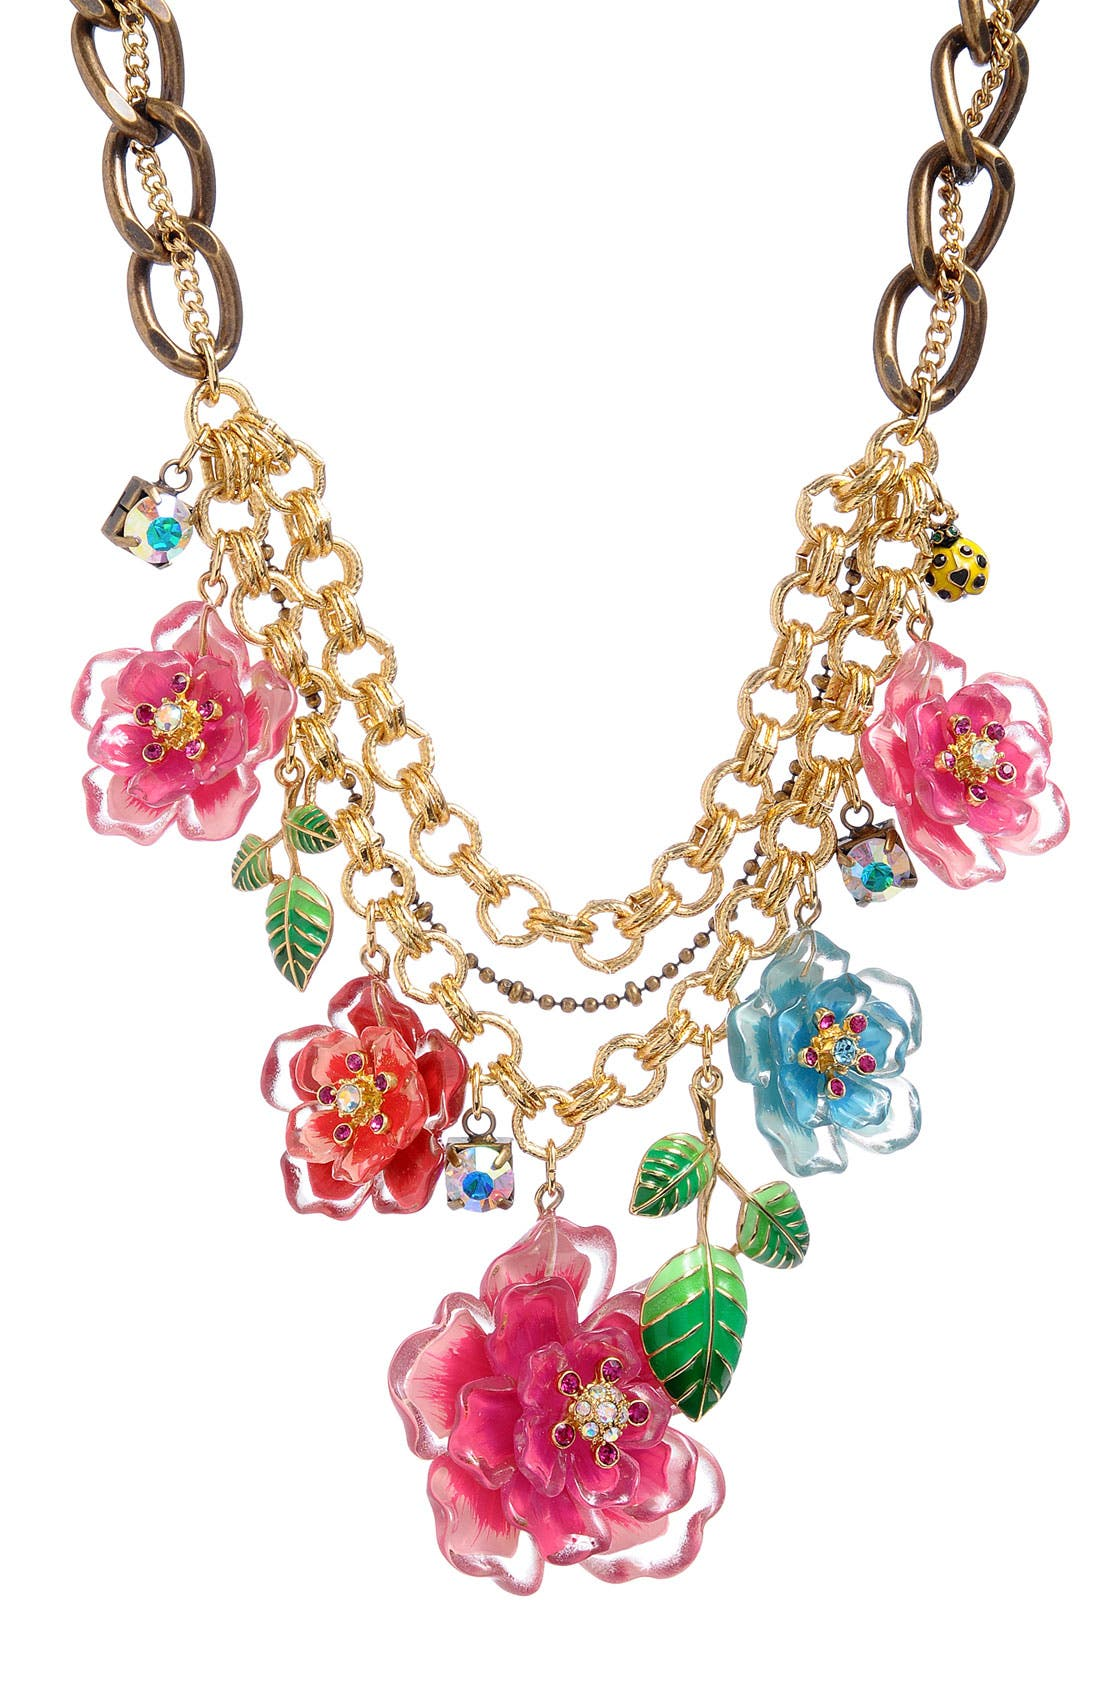 BETSEY JOHNSON, 'Hawaiian Luau' Floral Bib Statement Necklace, Main thumbnail 1, color, 960